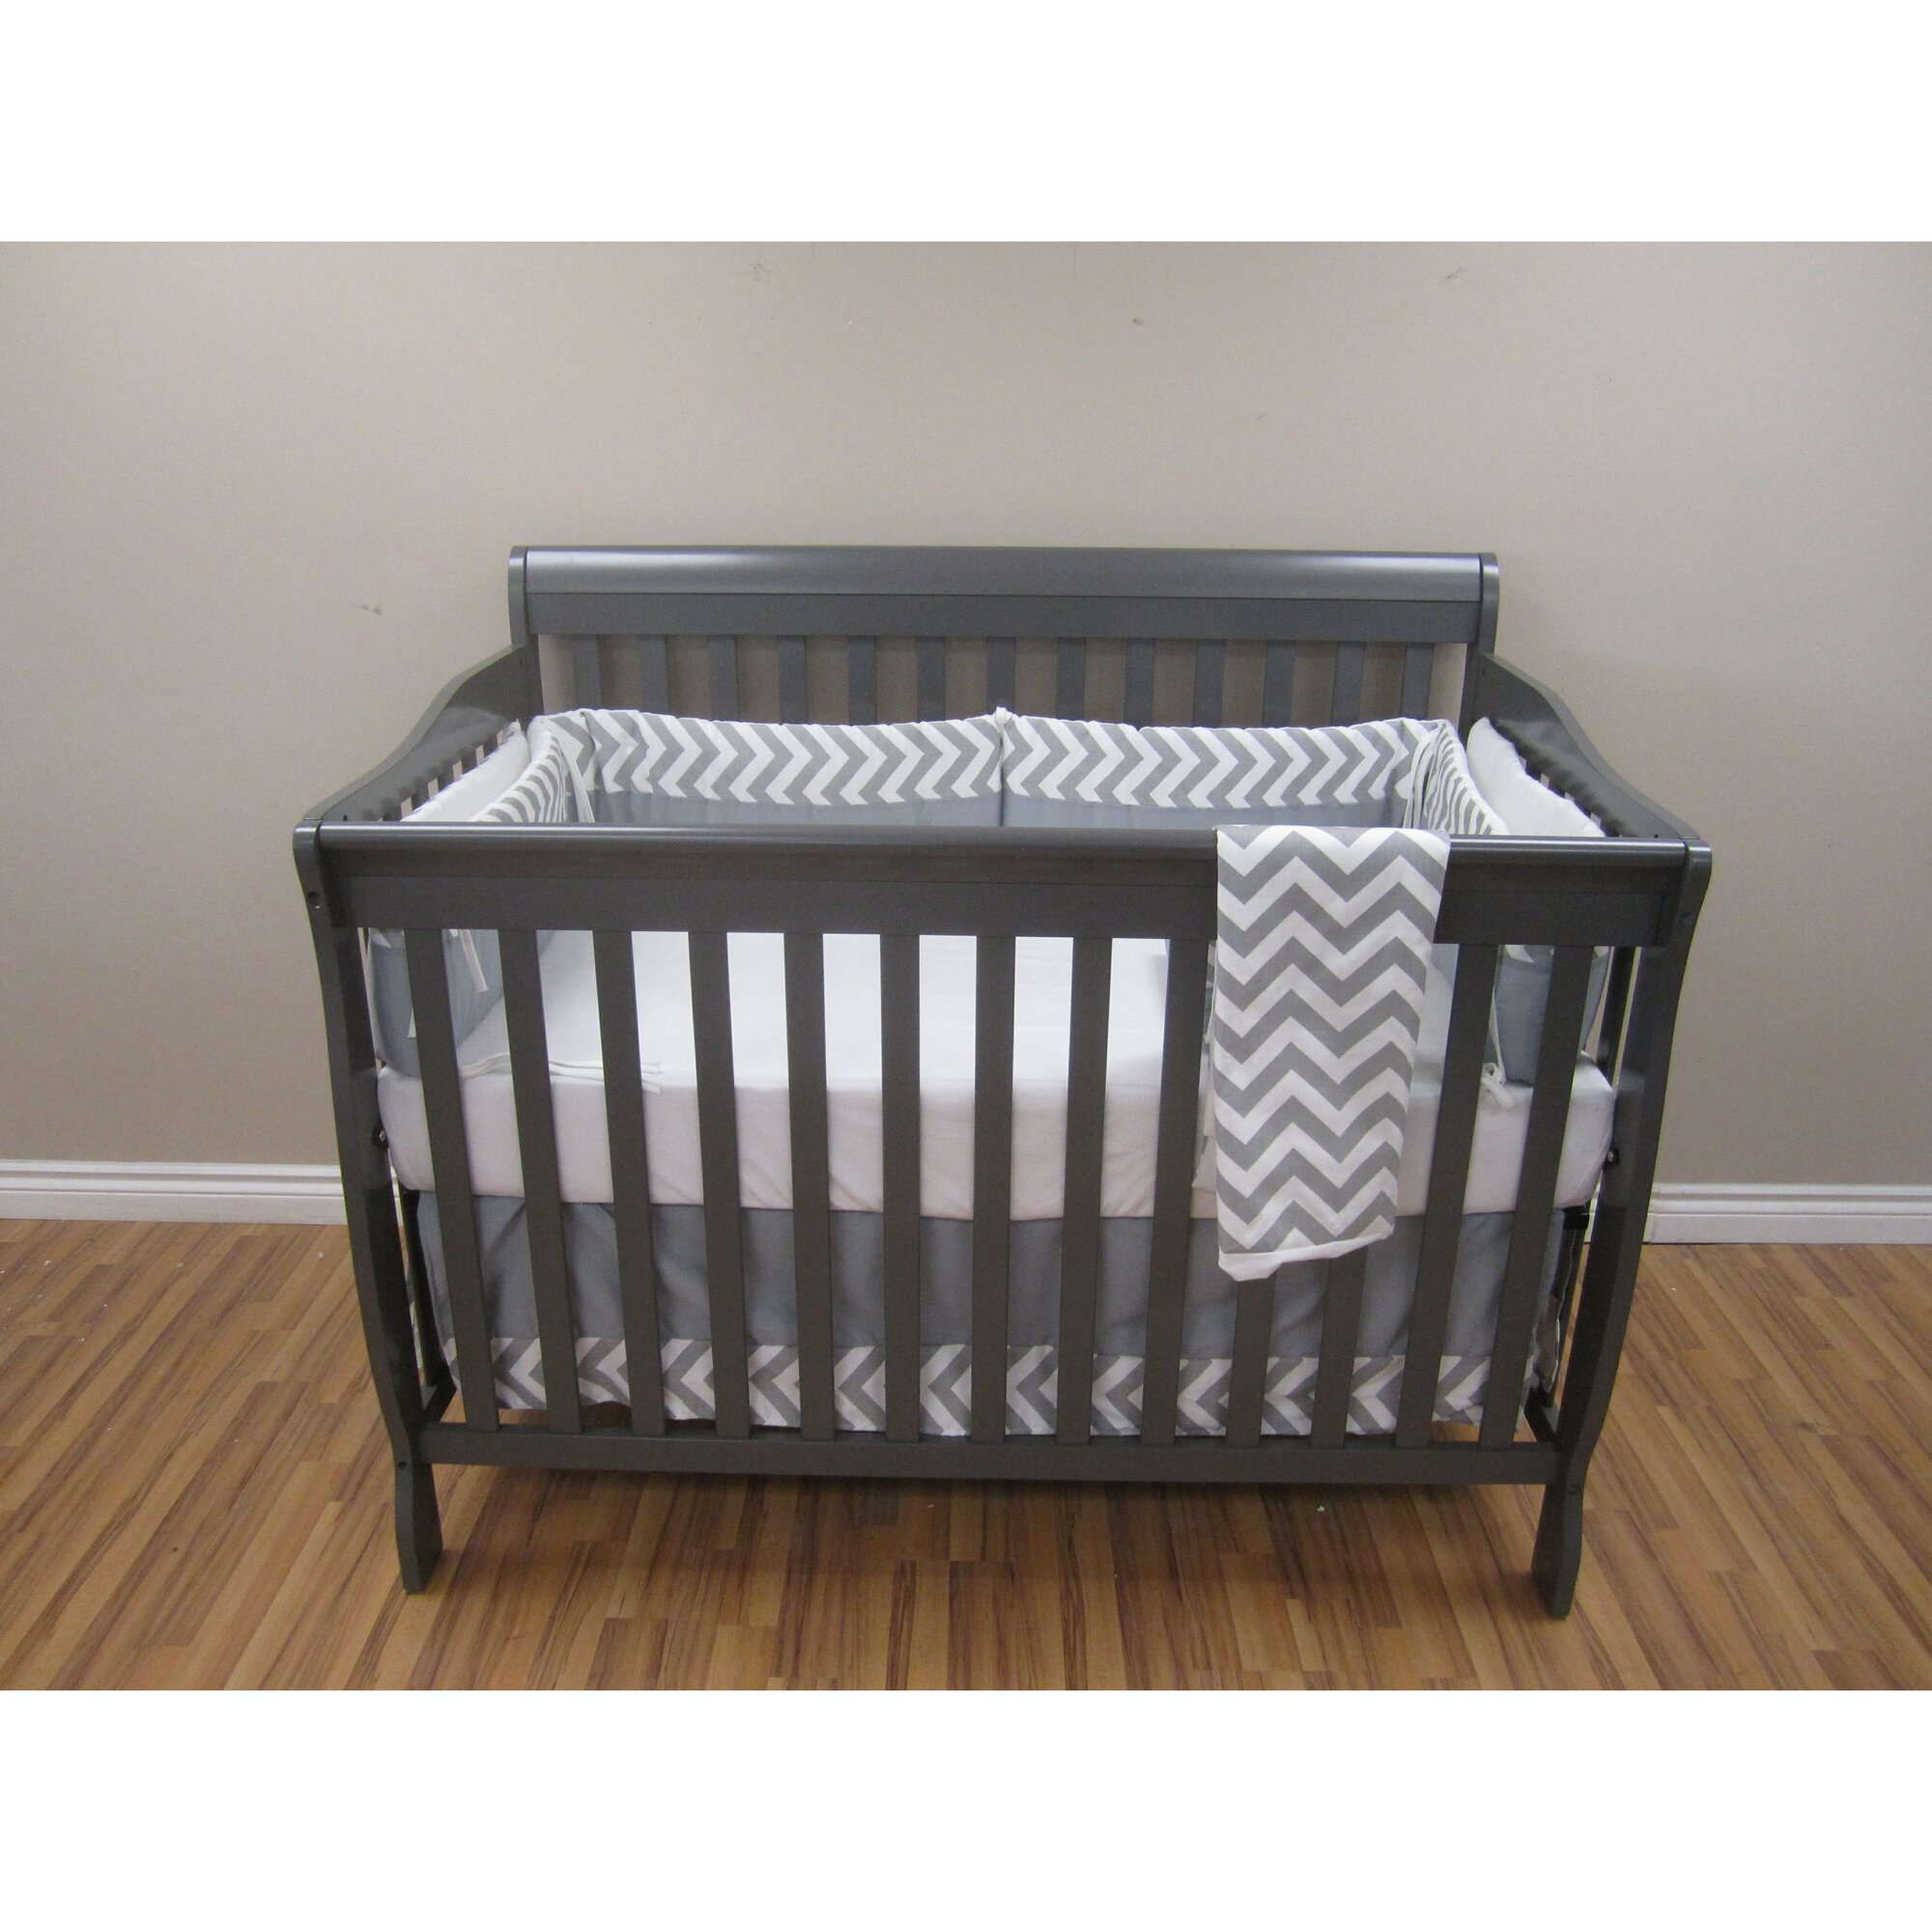 Concord Baby Abby 4 in 1 Convertible Standard Crib with